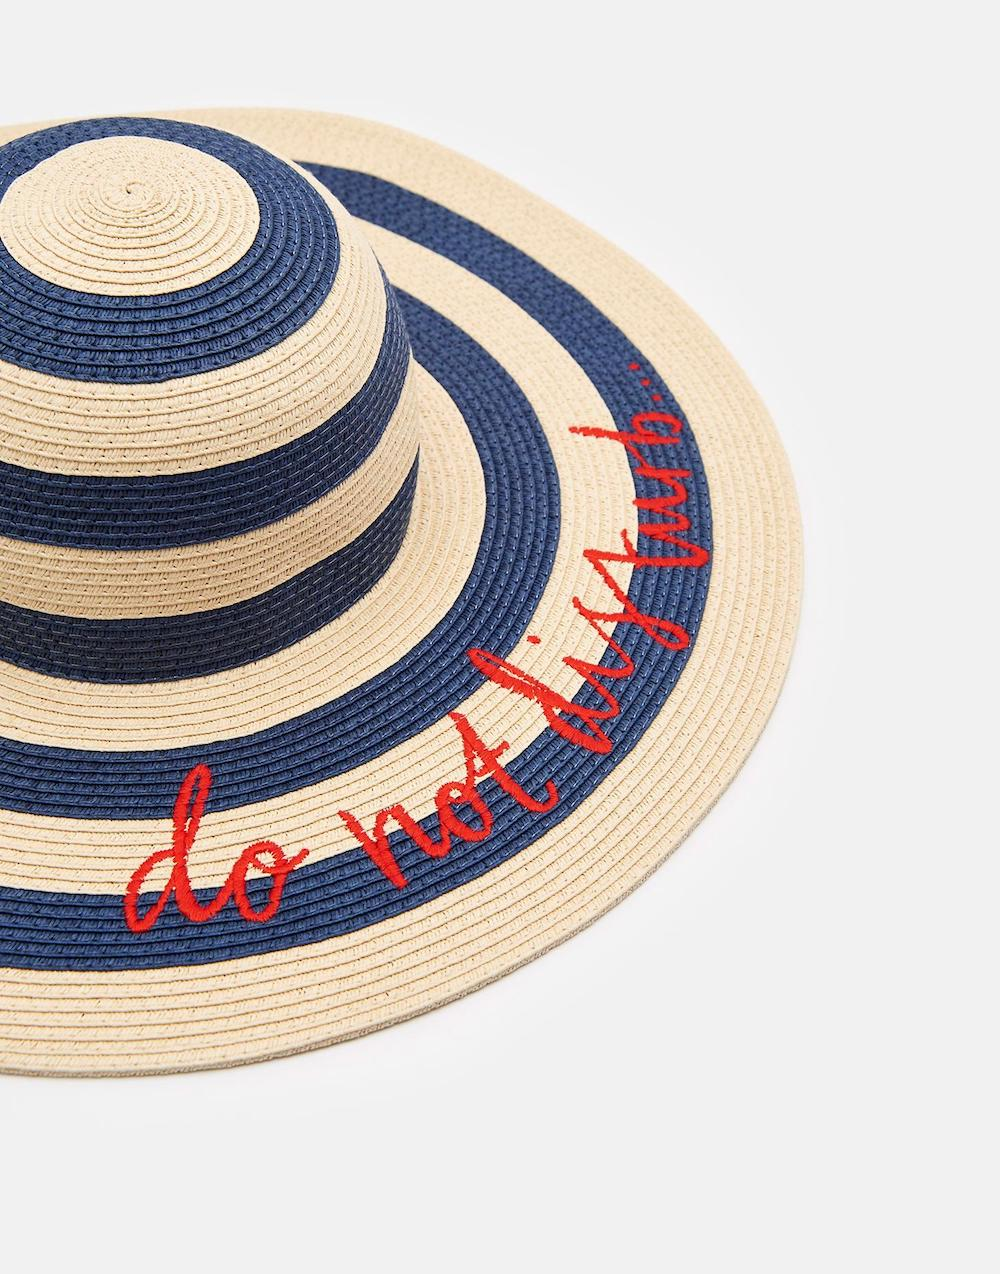 navy striped straw hat with red writing